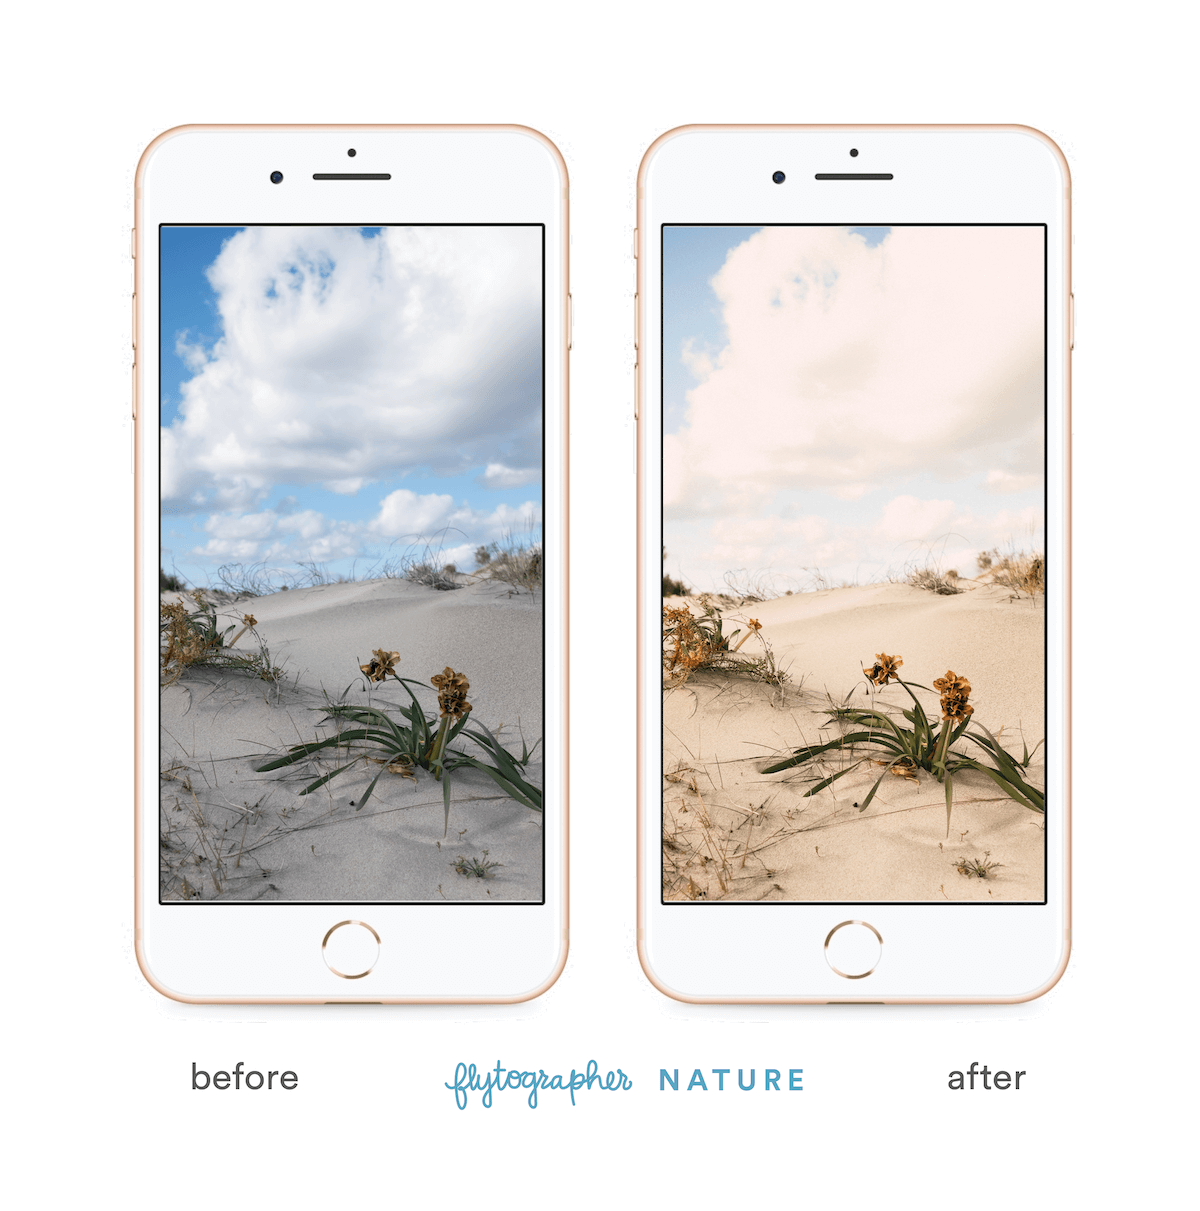 Picture of a desert plant before and after 'Flytographer Nature' preset